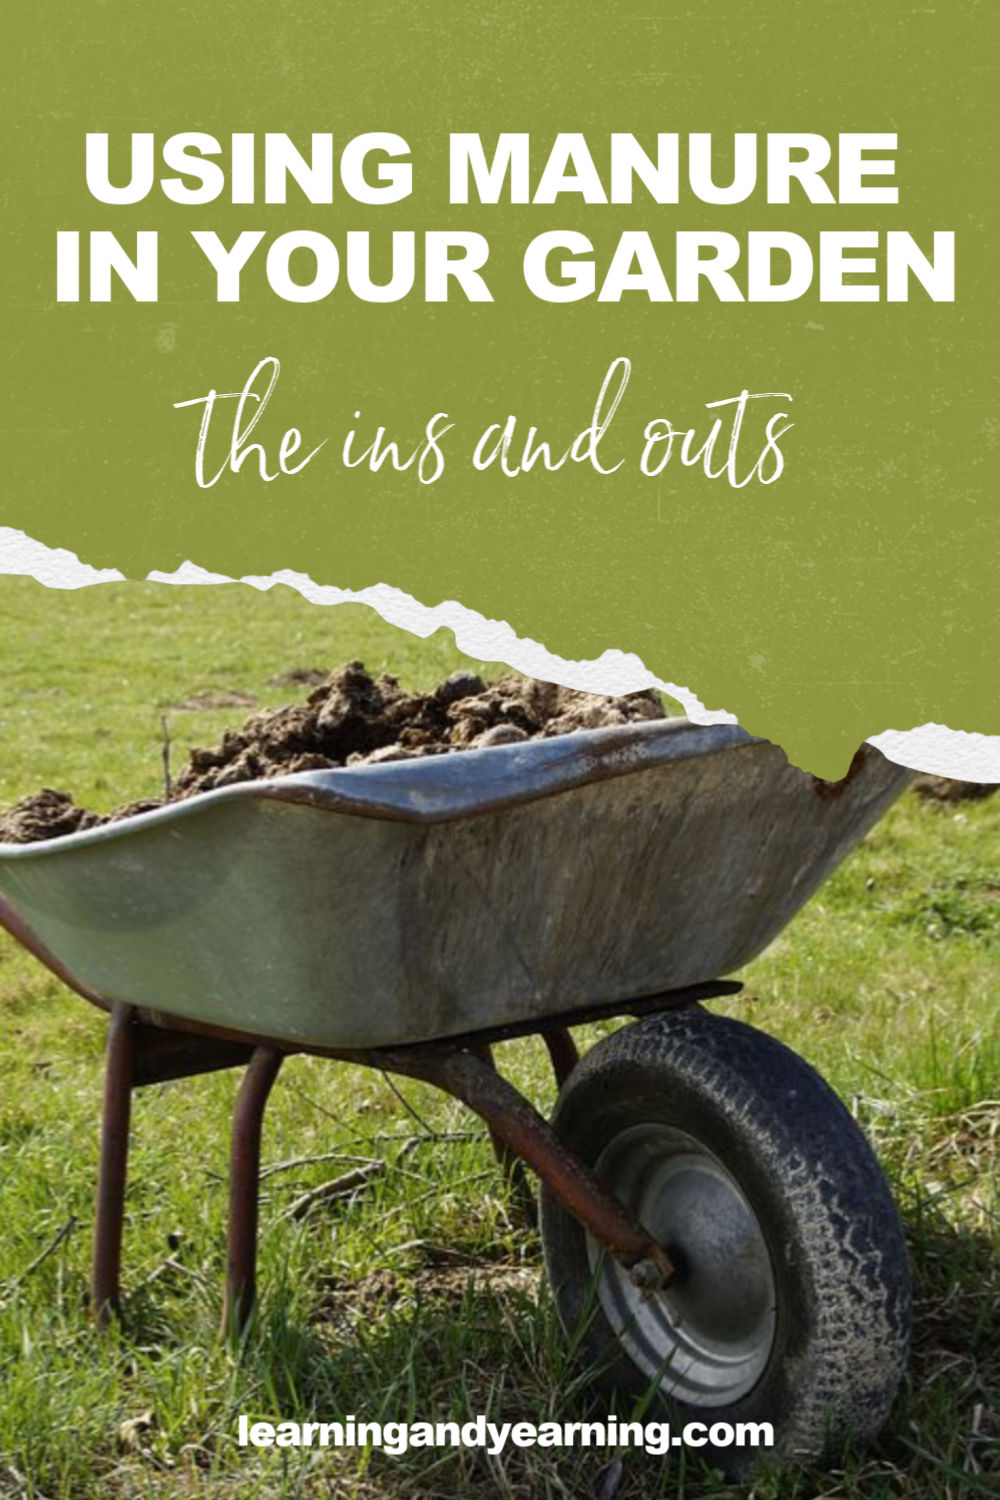 How to safely use manure in your organic garden!